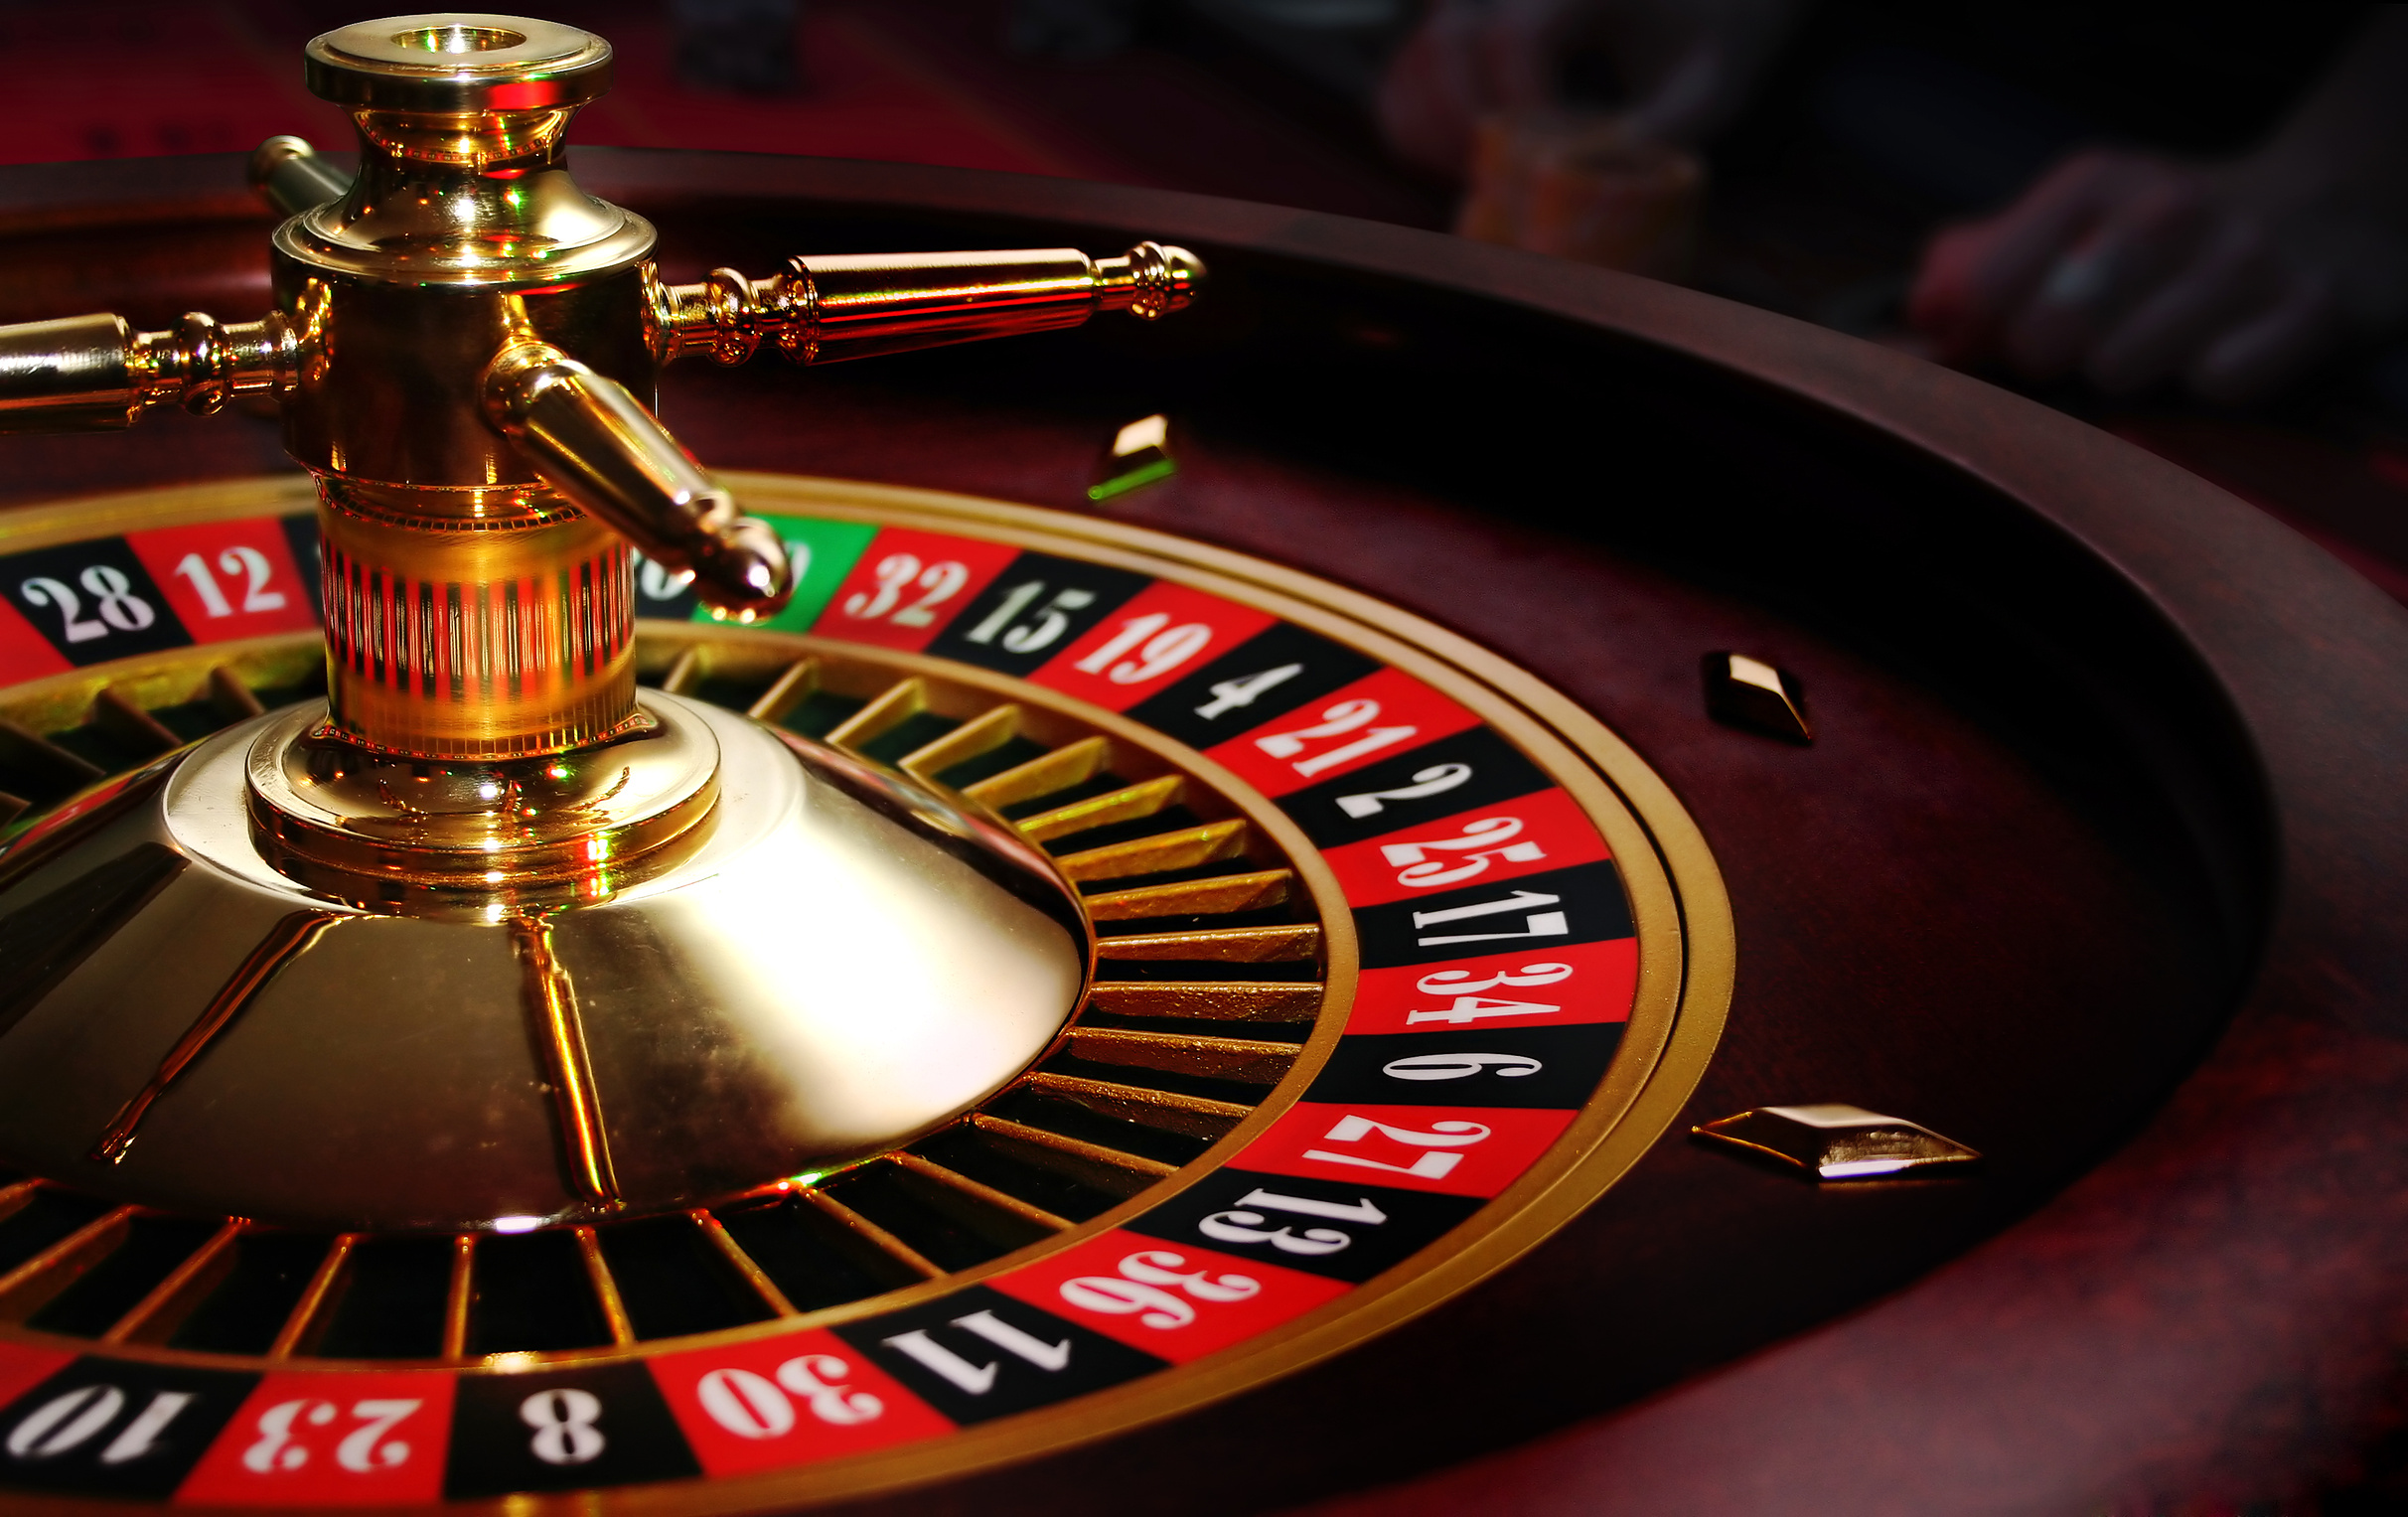 Casino Roulette Table 10456.6 Kb